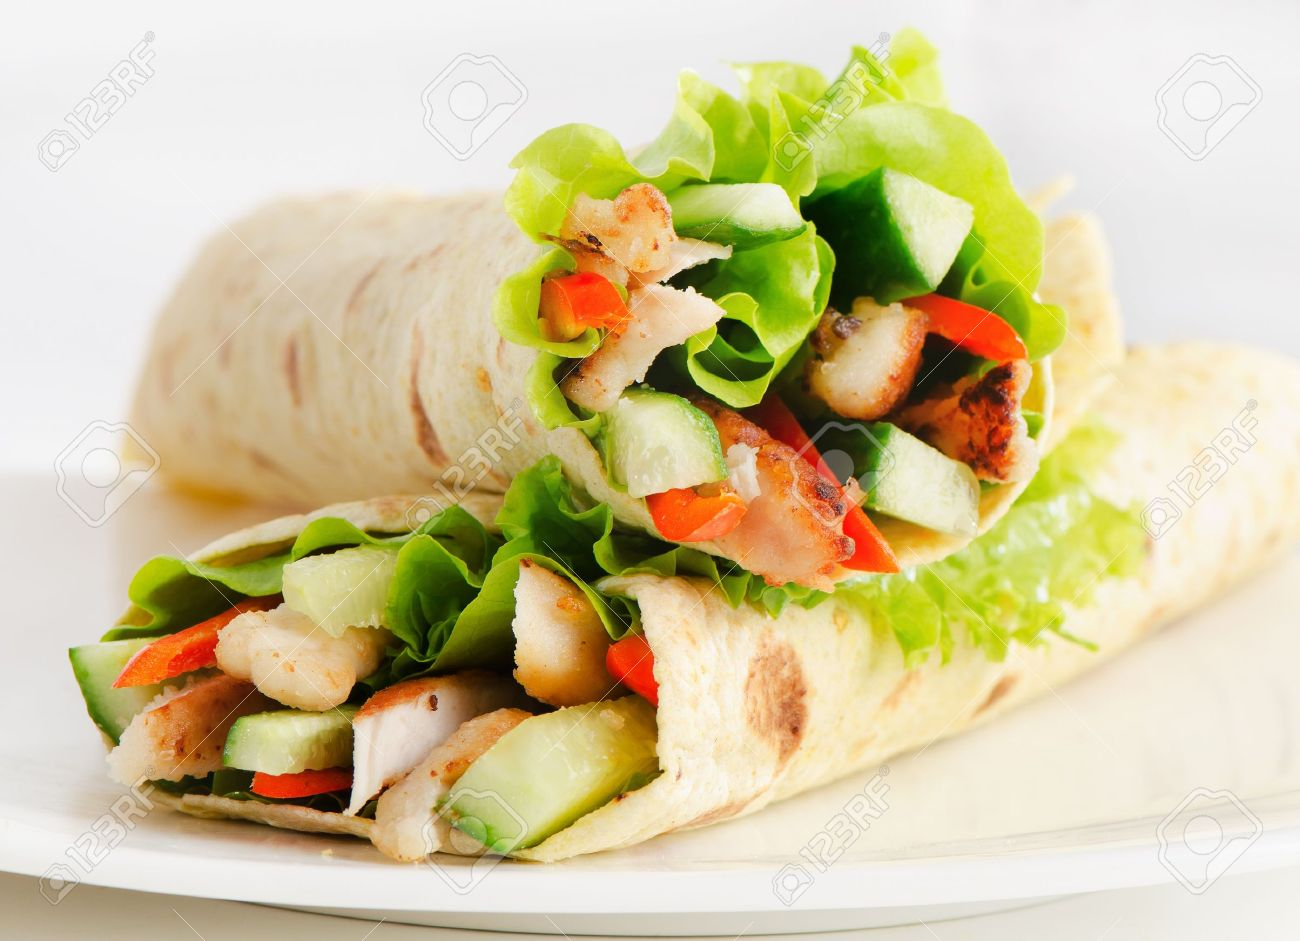 tortilla wraps with chicken  and fresh vegetables Stock Photo - 18721644